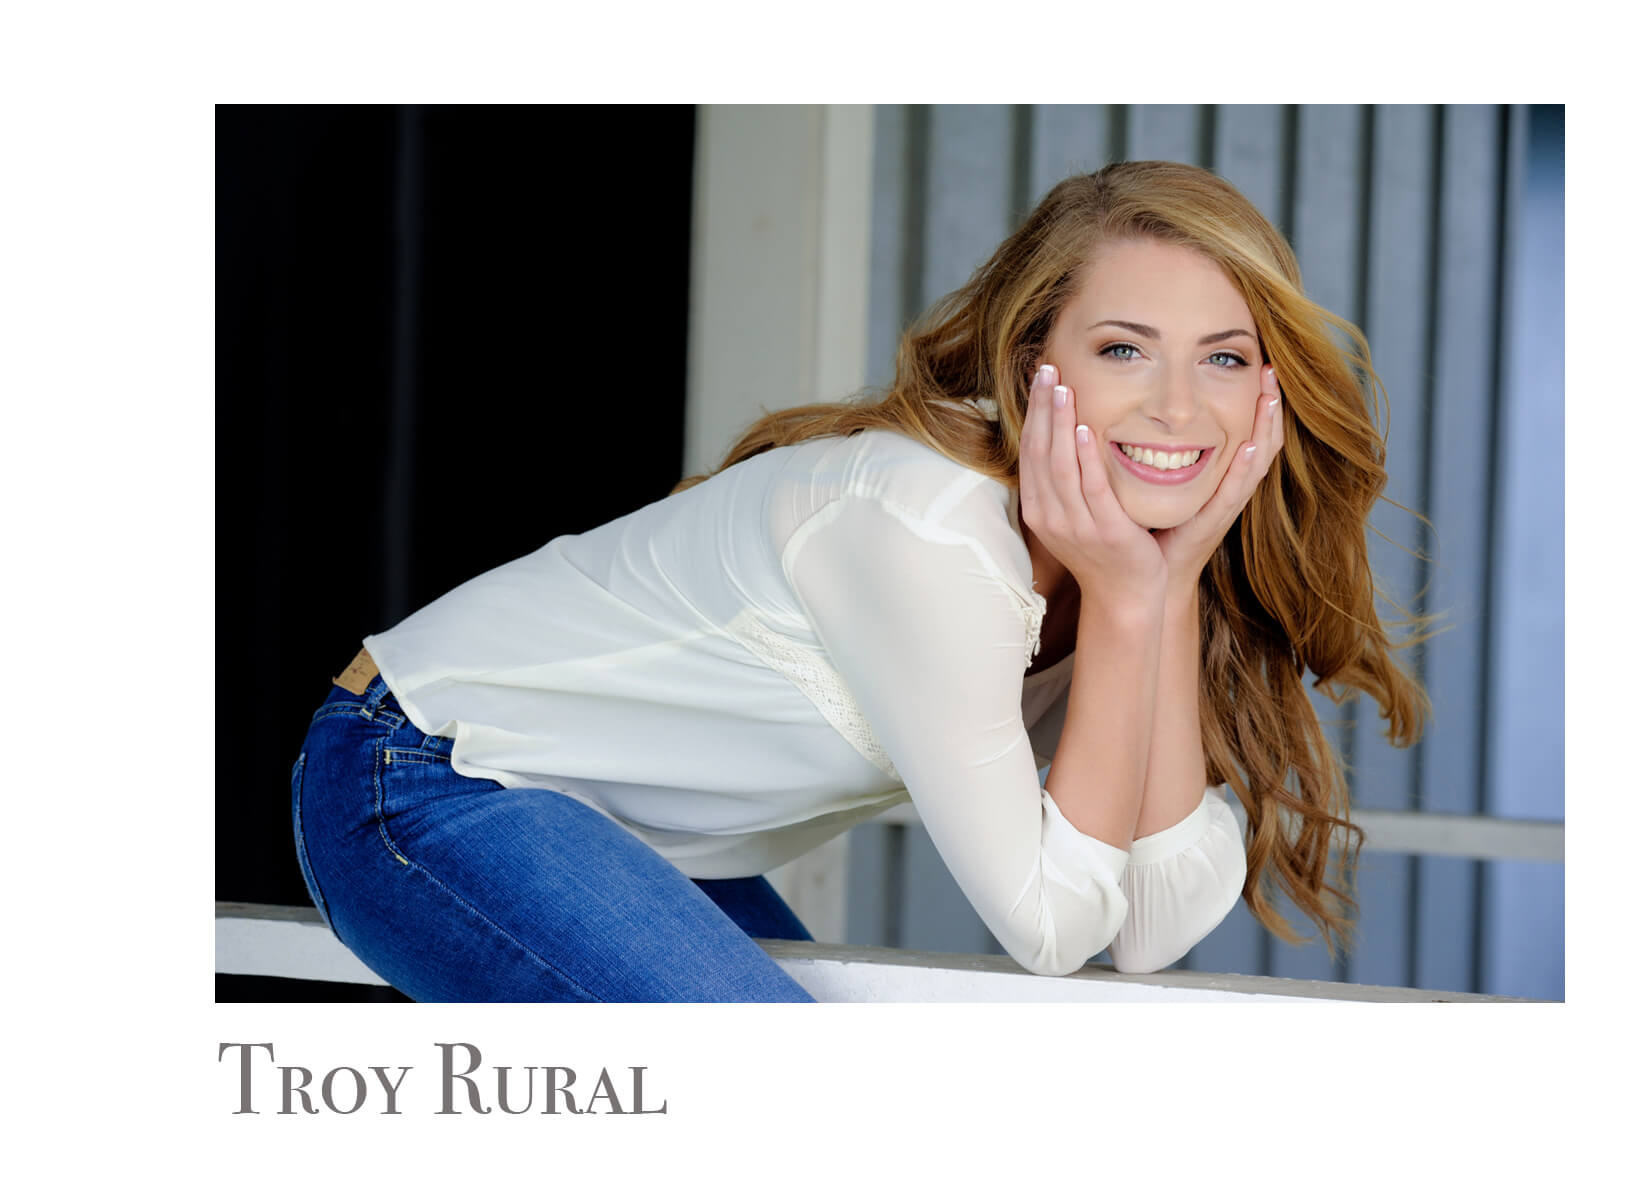 Troy Michigan senior photos shot on rural location for romantic feel within a metro Detroit area.